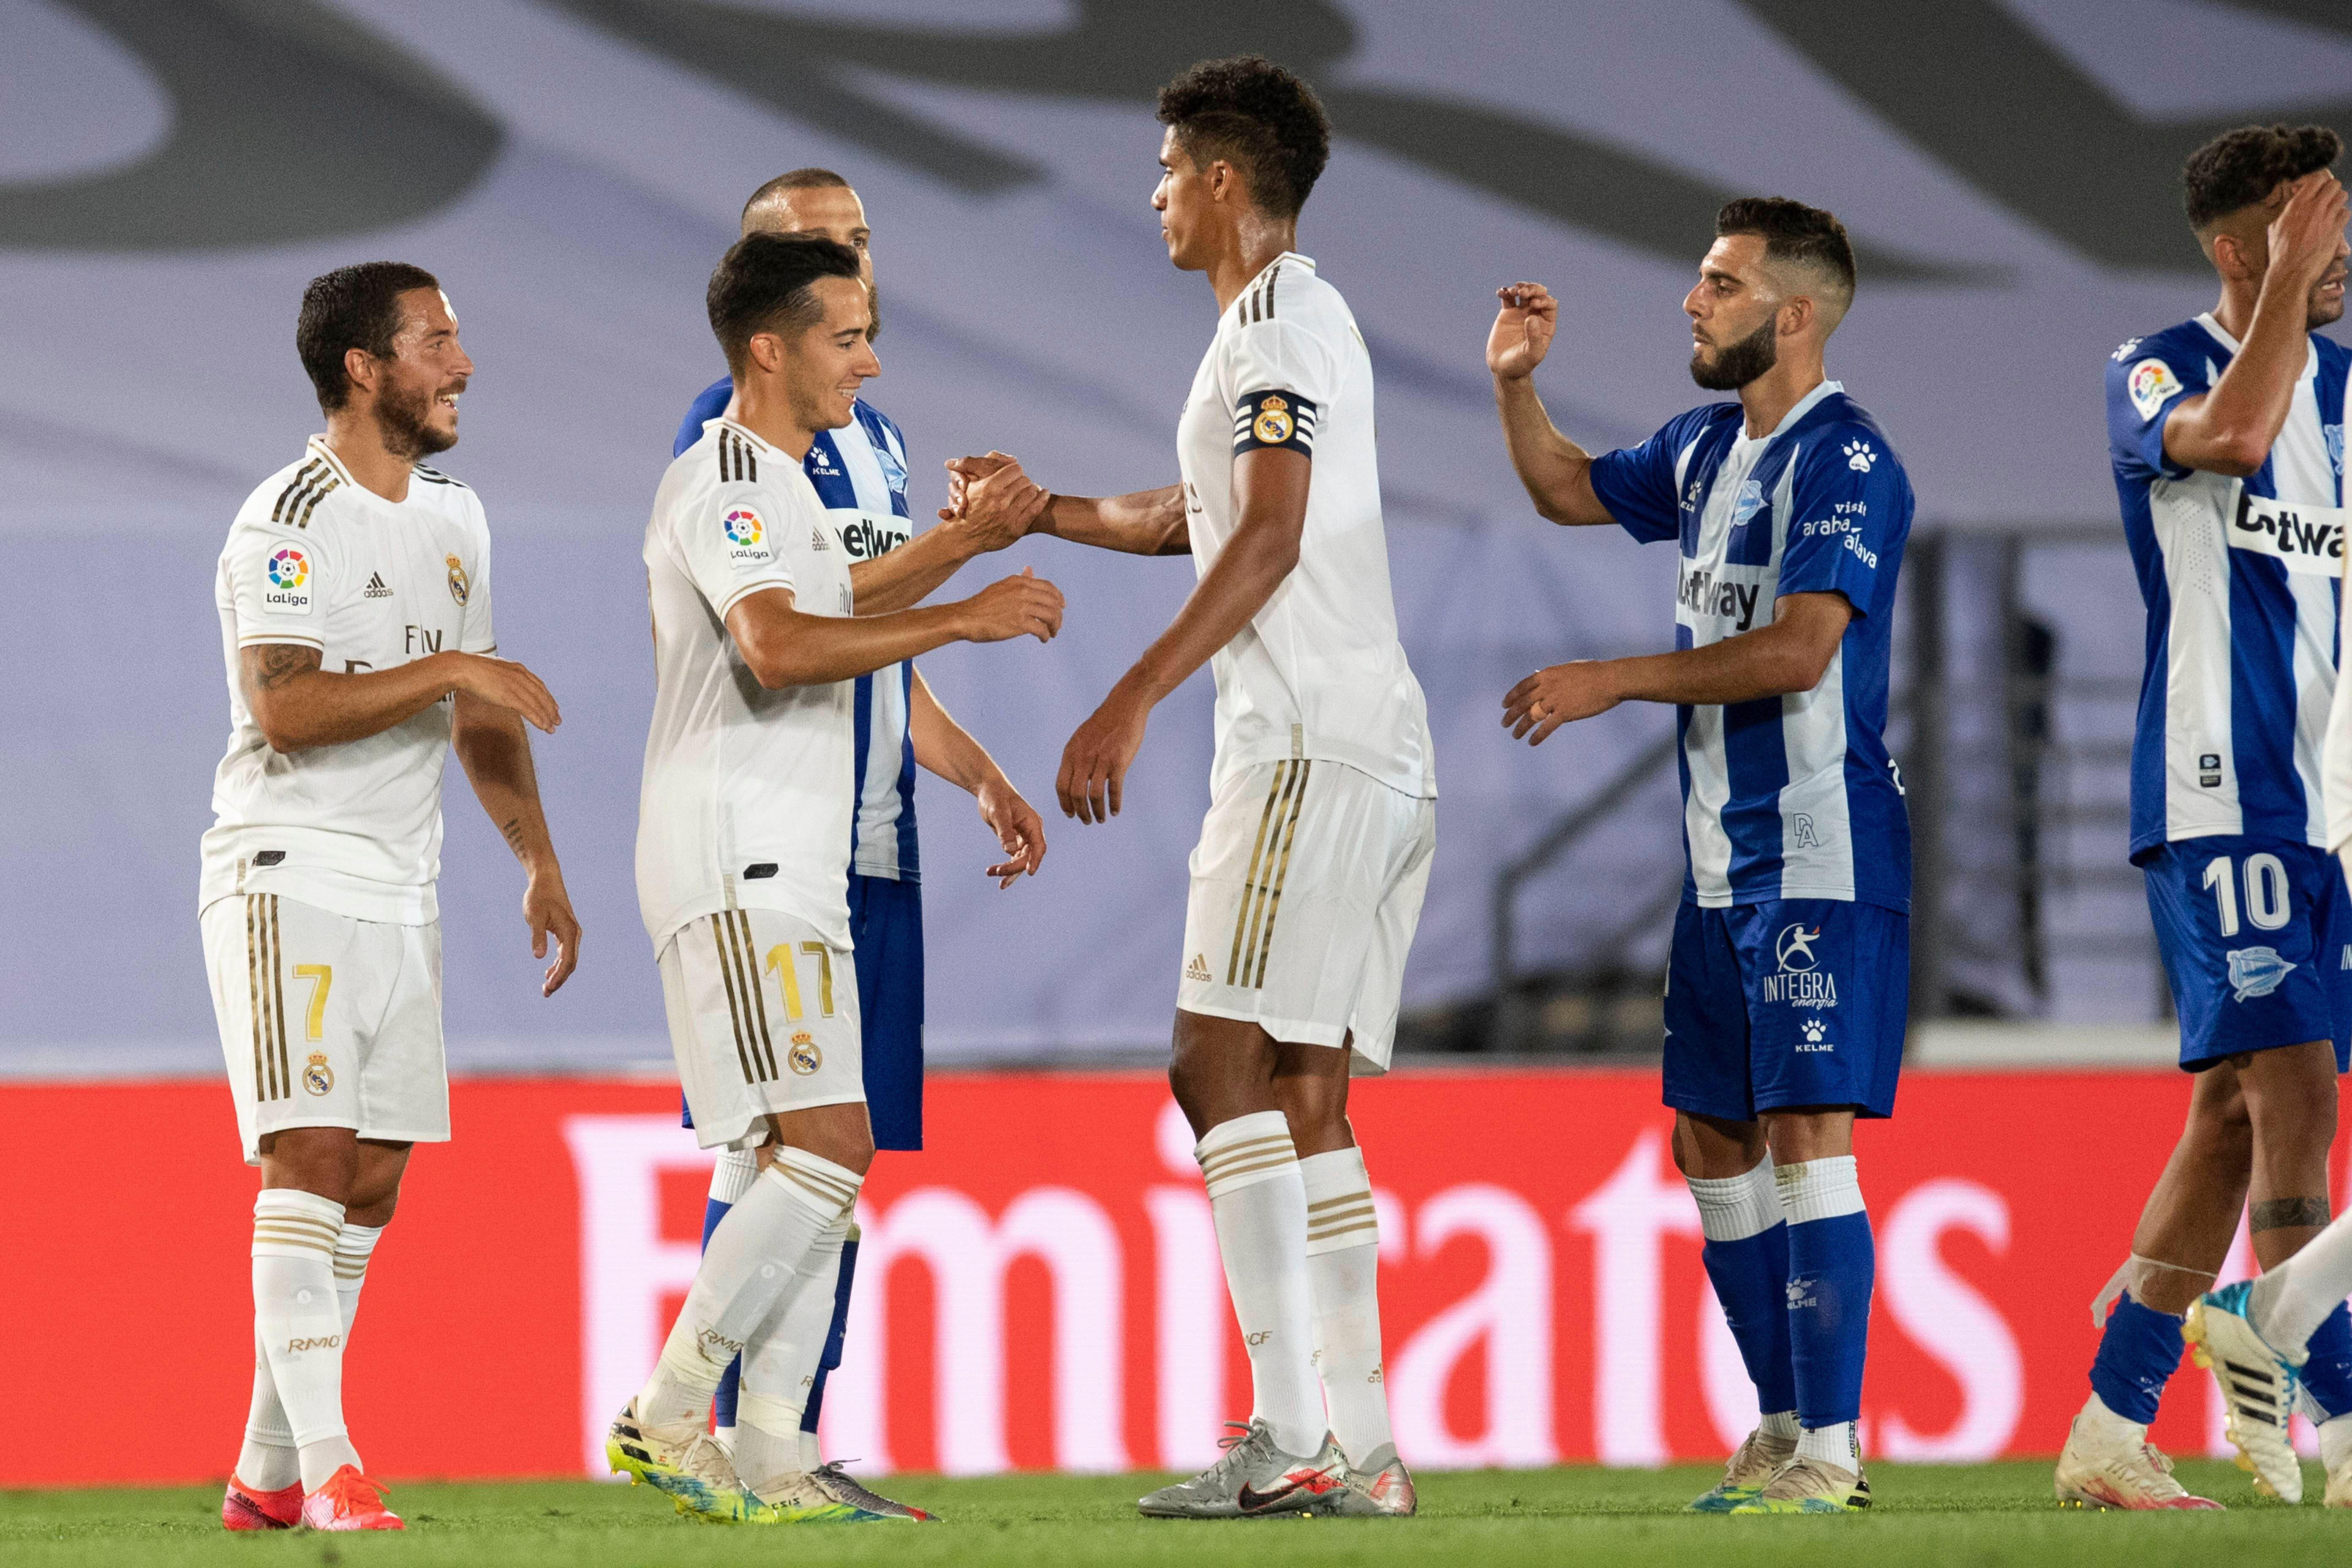 Real Madrid are hoping to get their 2021/22 La Liga campaign off to a winning start when they travel to Alavez on Saturday night.